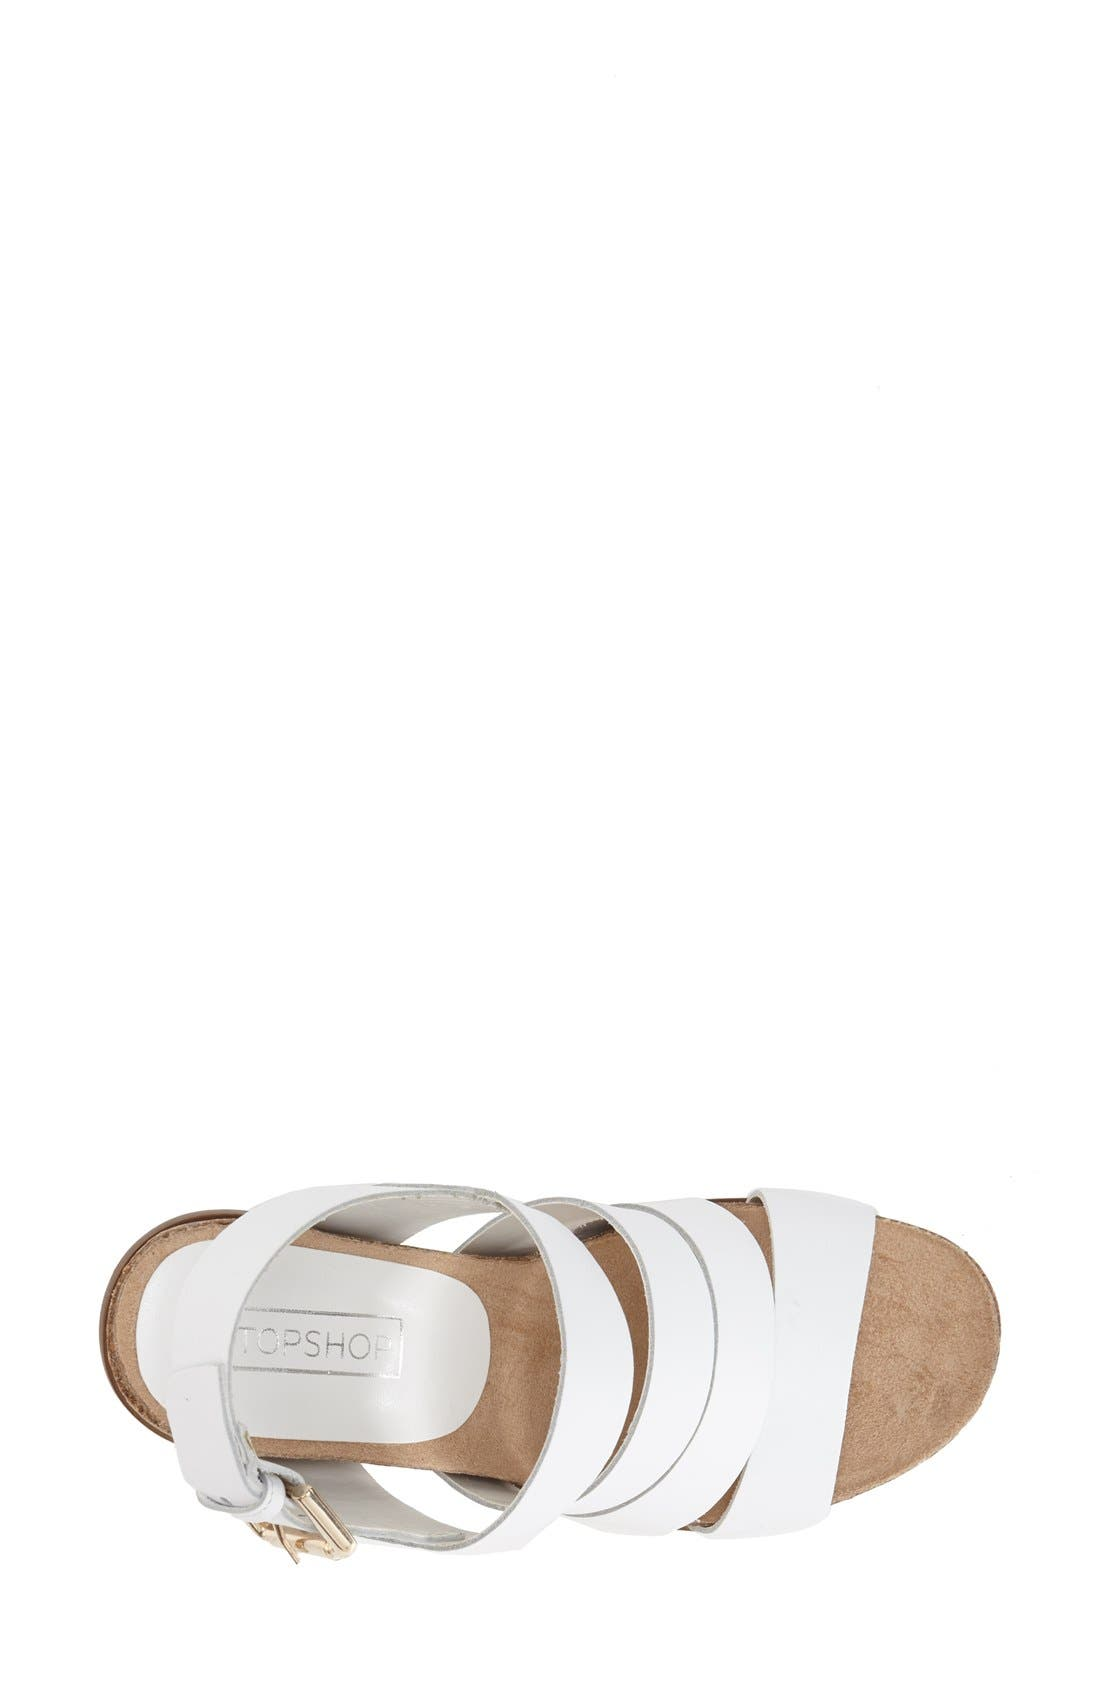 Alternate Image 3  - Topshop 'Nickname' Sandal (Women)